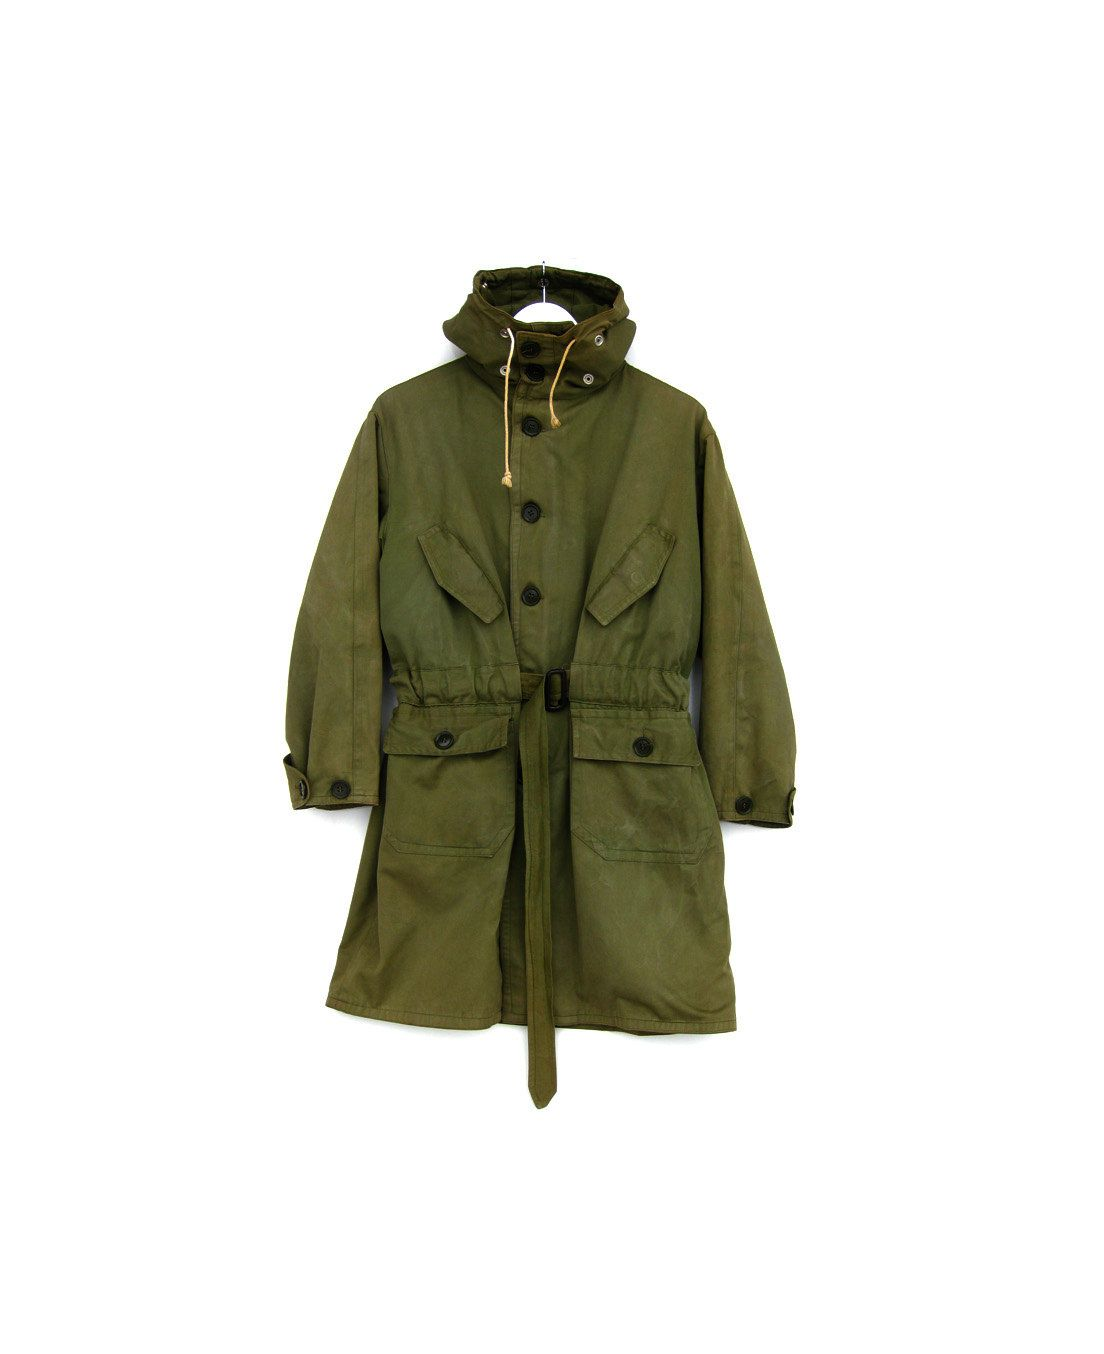 Vintage Military Jacket Olive Green Army Coat Hooded Belted Long Sleeved Outterwear 64 00 Via Vintage Military Jacket Military Outfit Vintage Military [ 1354 x 1104 Pixel ]